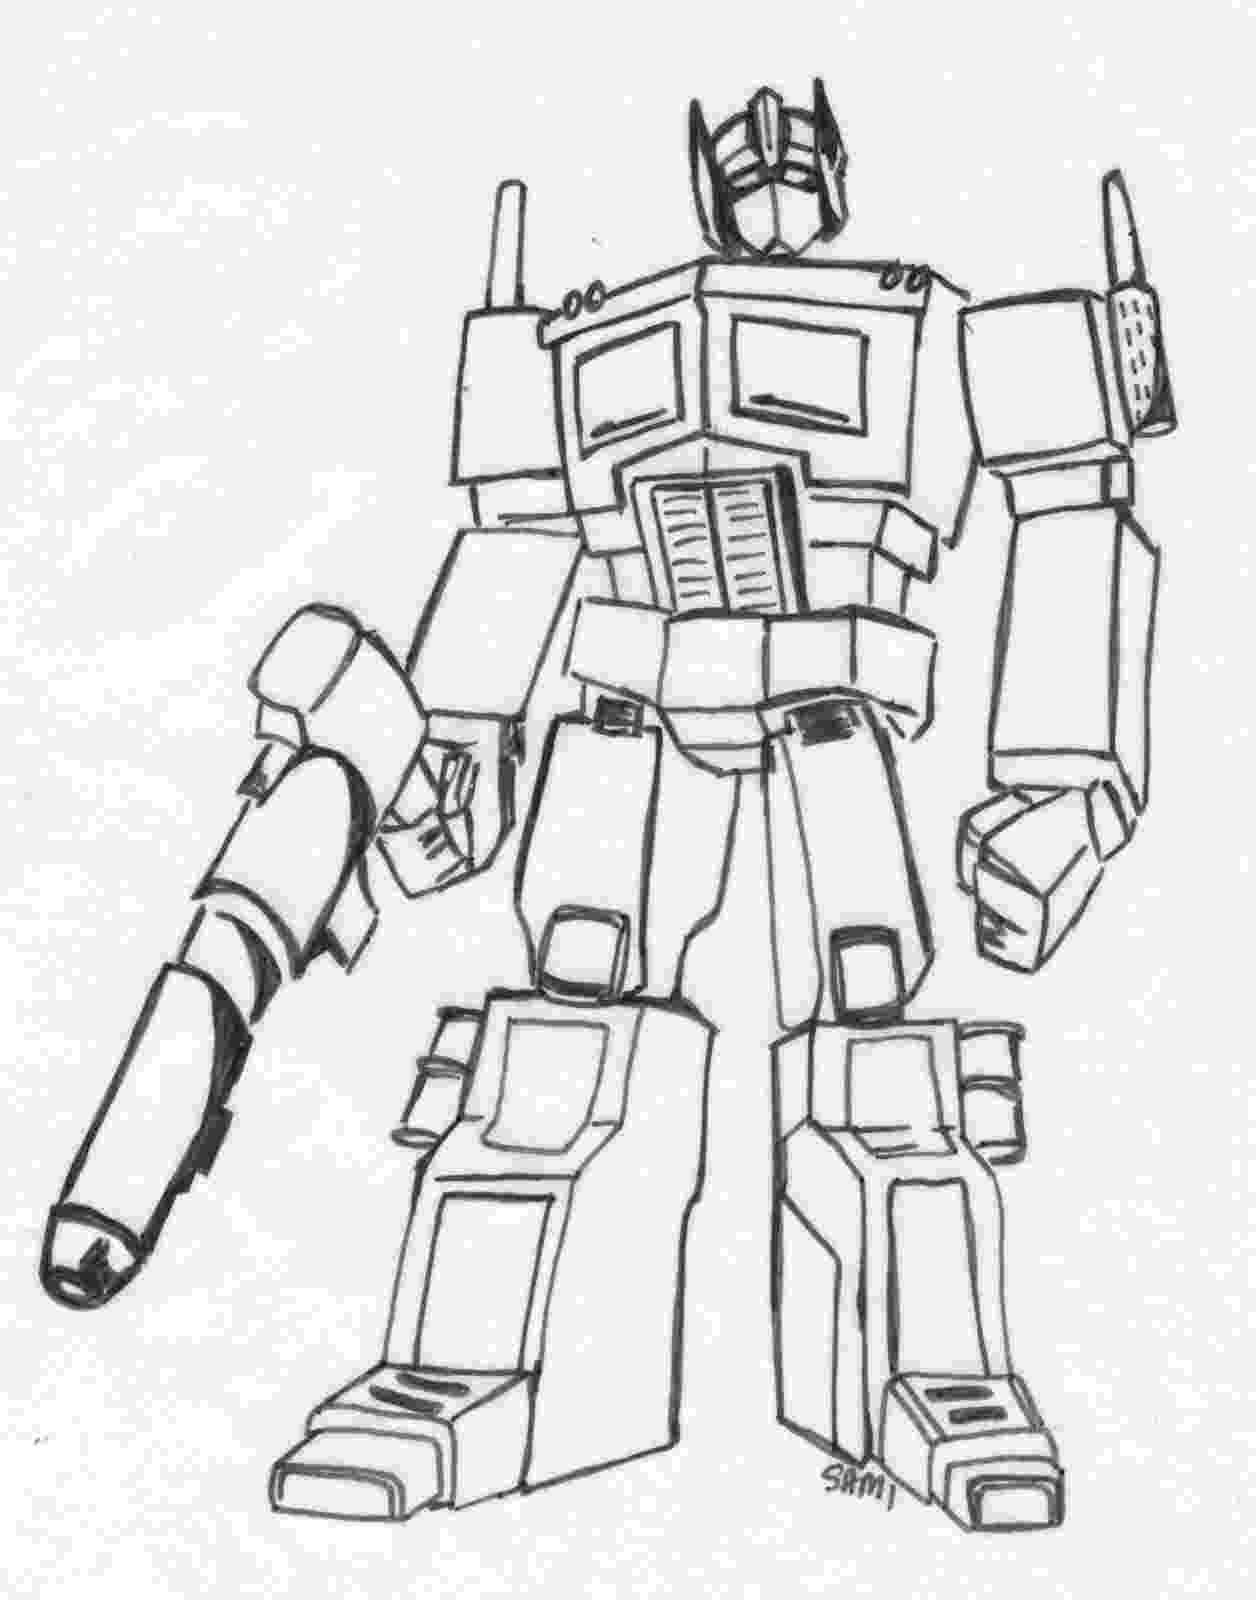 optimus prime coloring page pin by shilah lamere on projects transformers coloring optimus page prime coloring